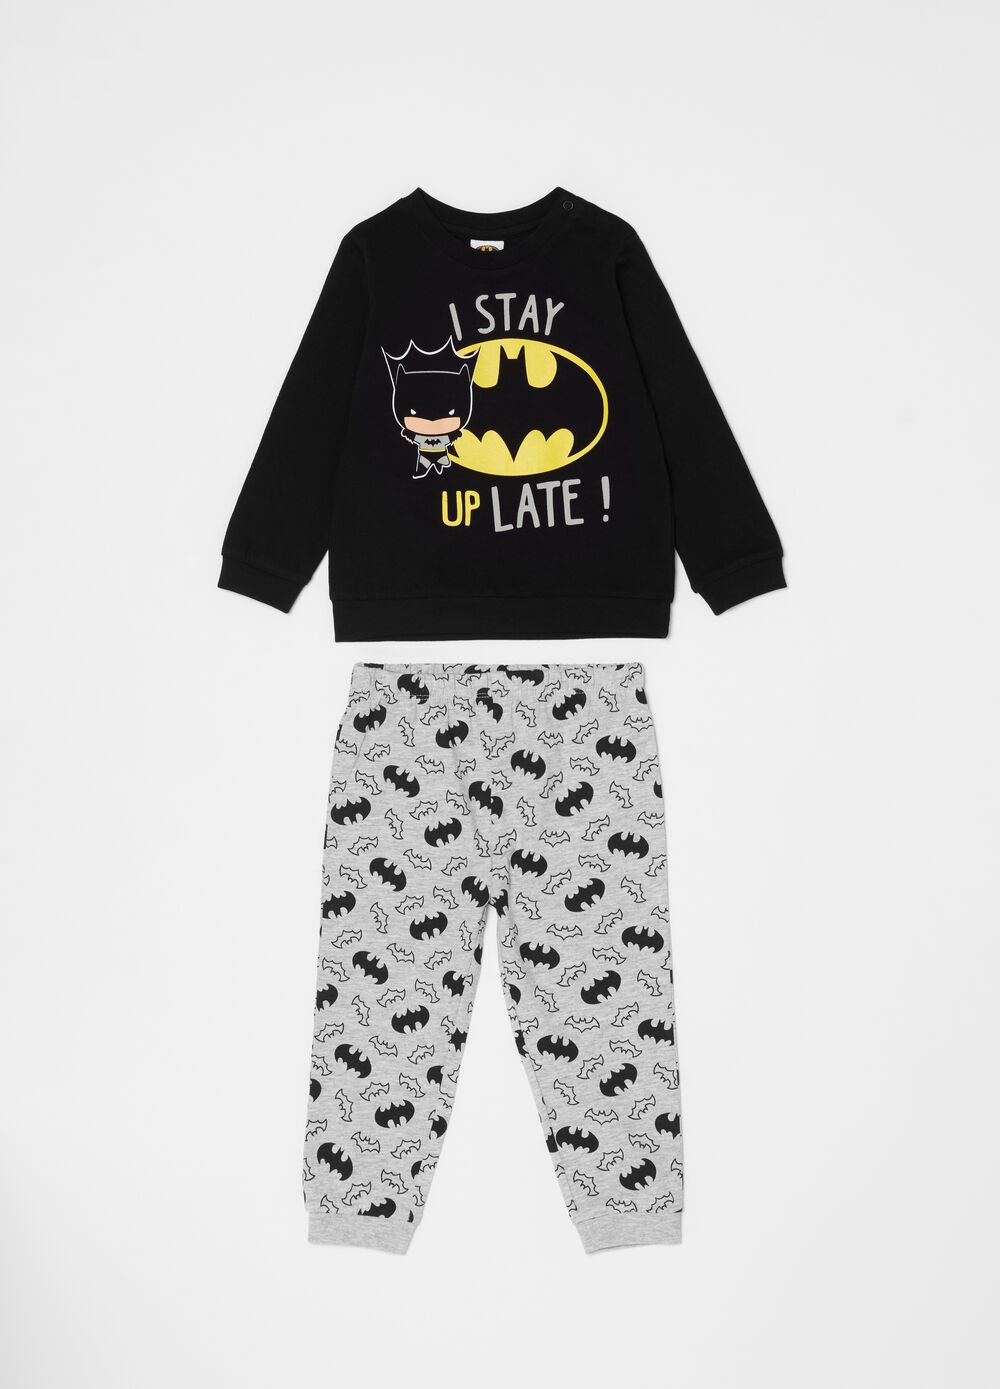 Long Warner Bros Batman pyjamas